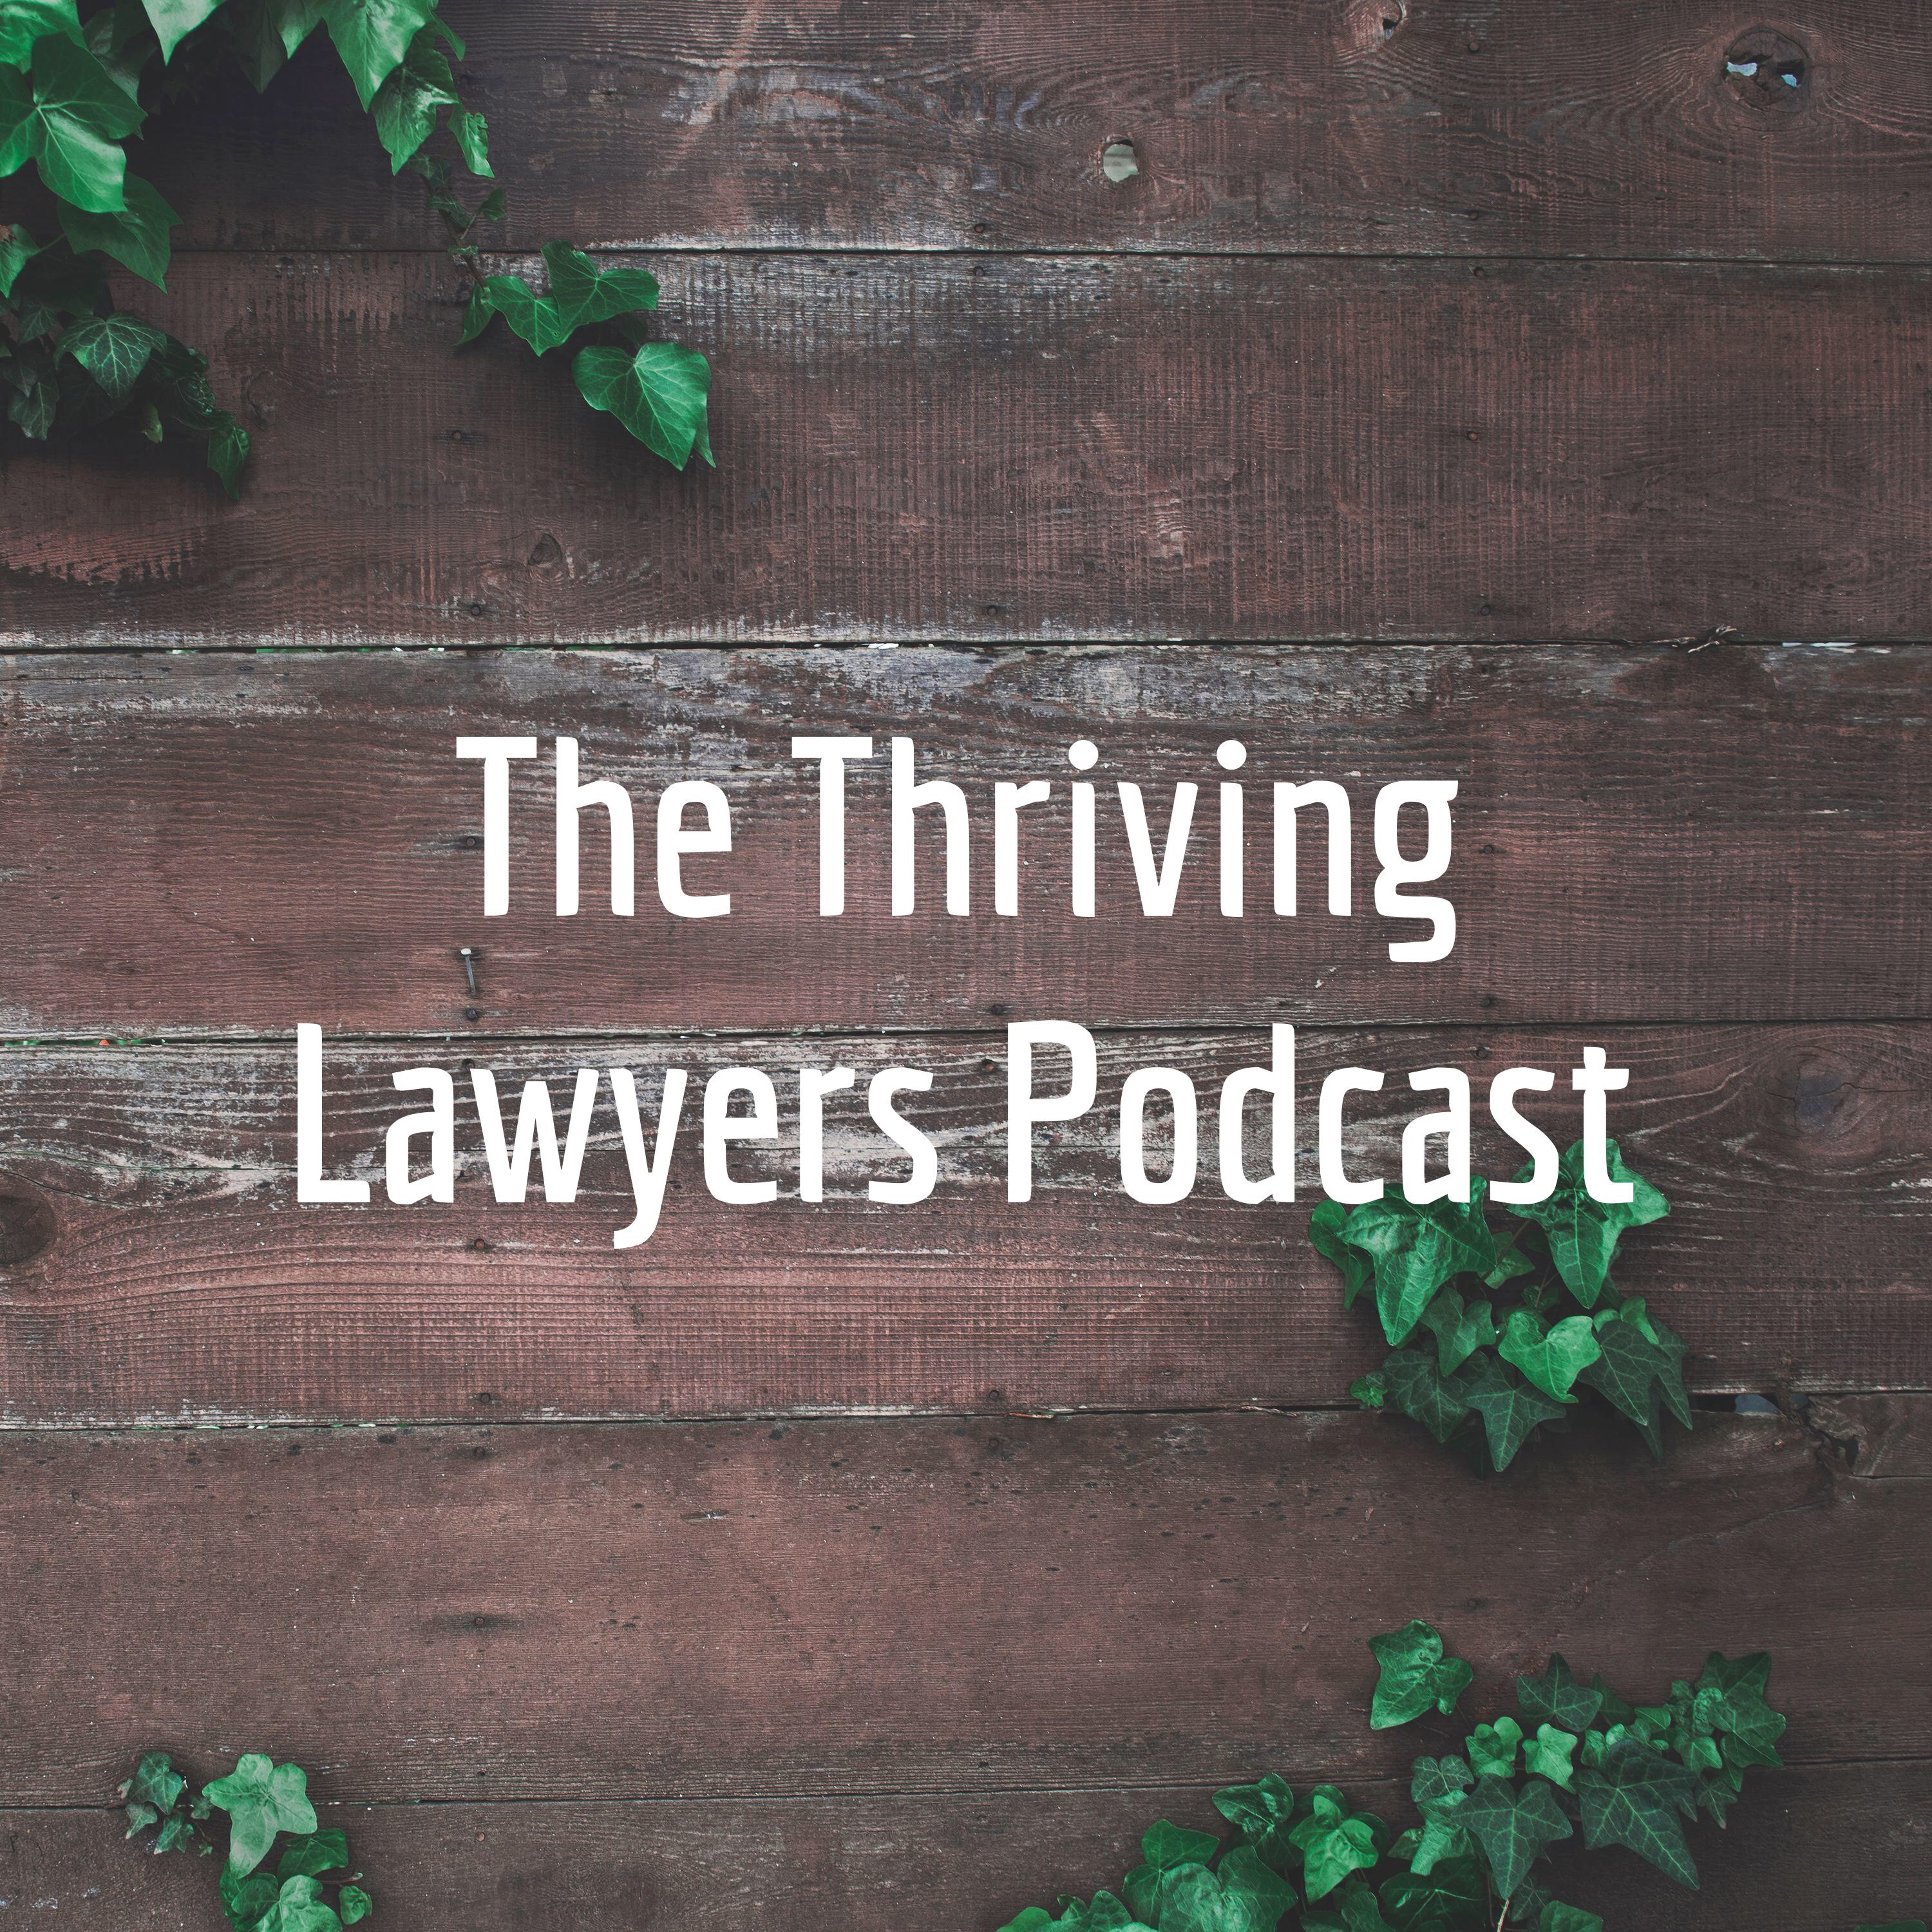 Artwork for The Thriving Lawyers Podcast: What's it all About?